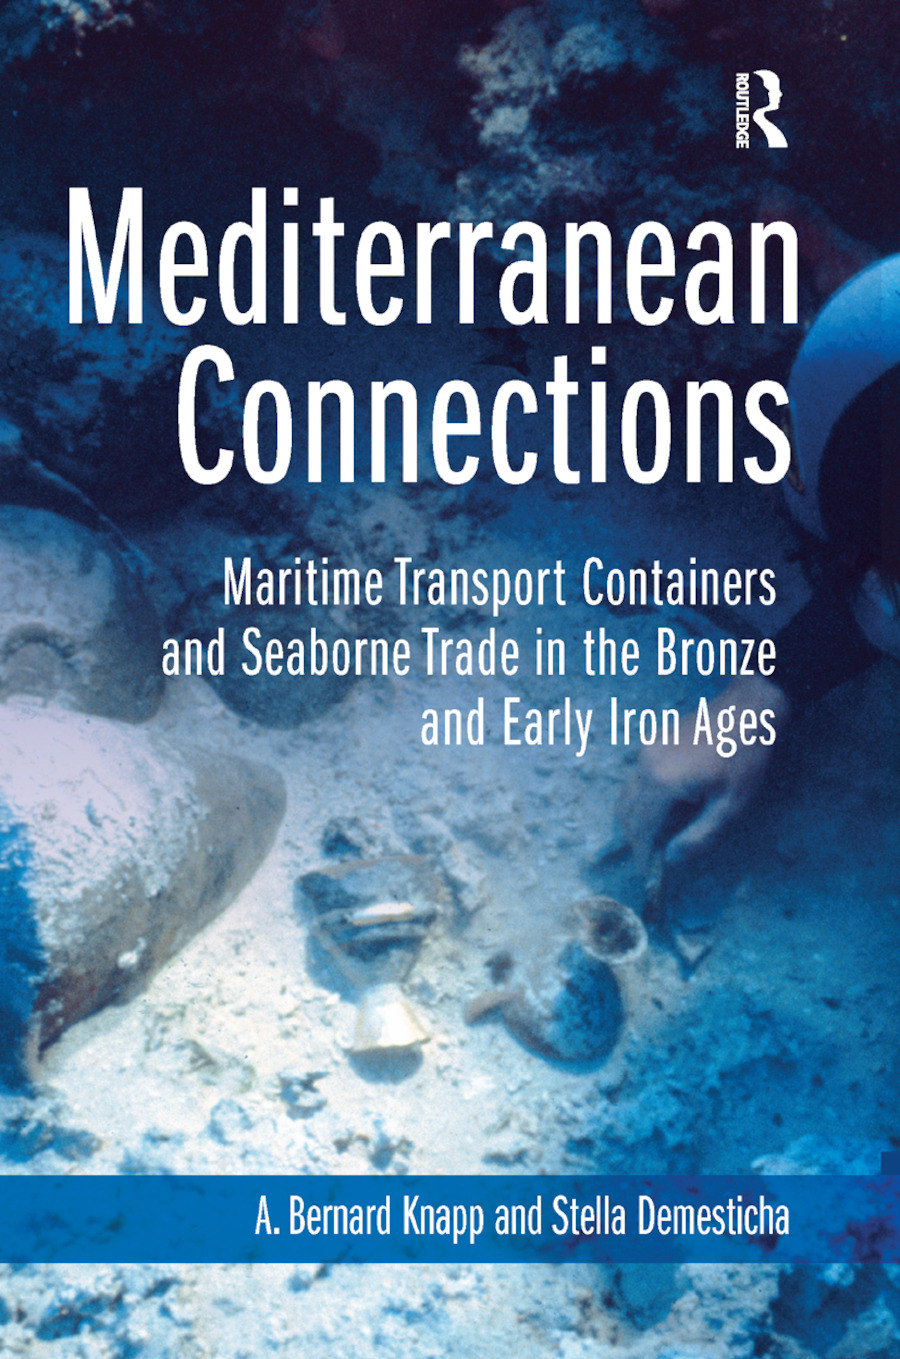 Mediterranean Connections: Maritime Transport Containers and Seaborne Trade in the Bronze and Early Iron Ages, 1st Edition (Paperback) book cover